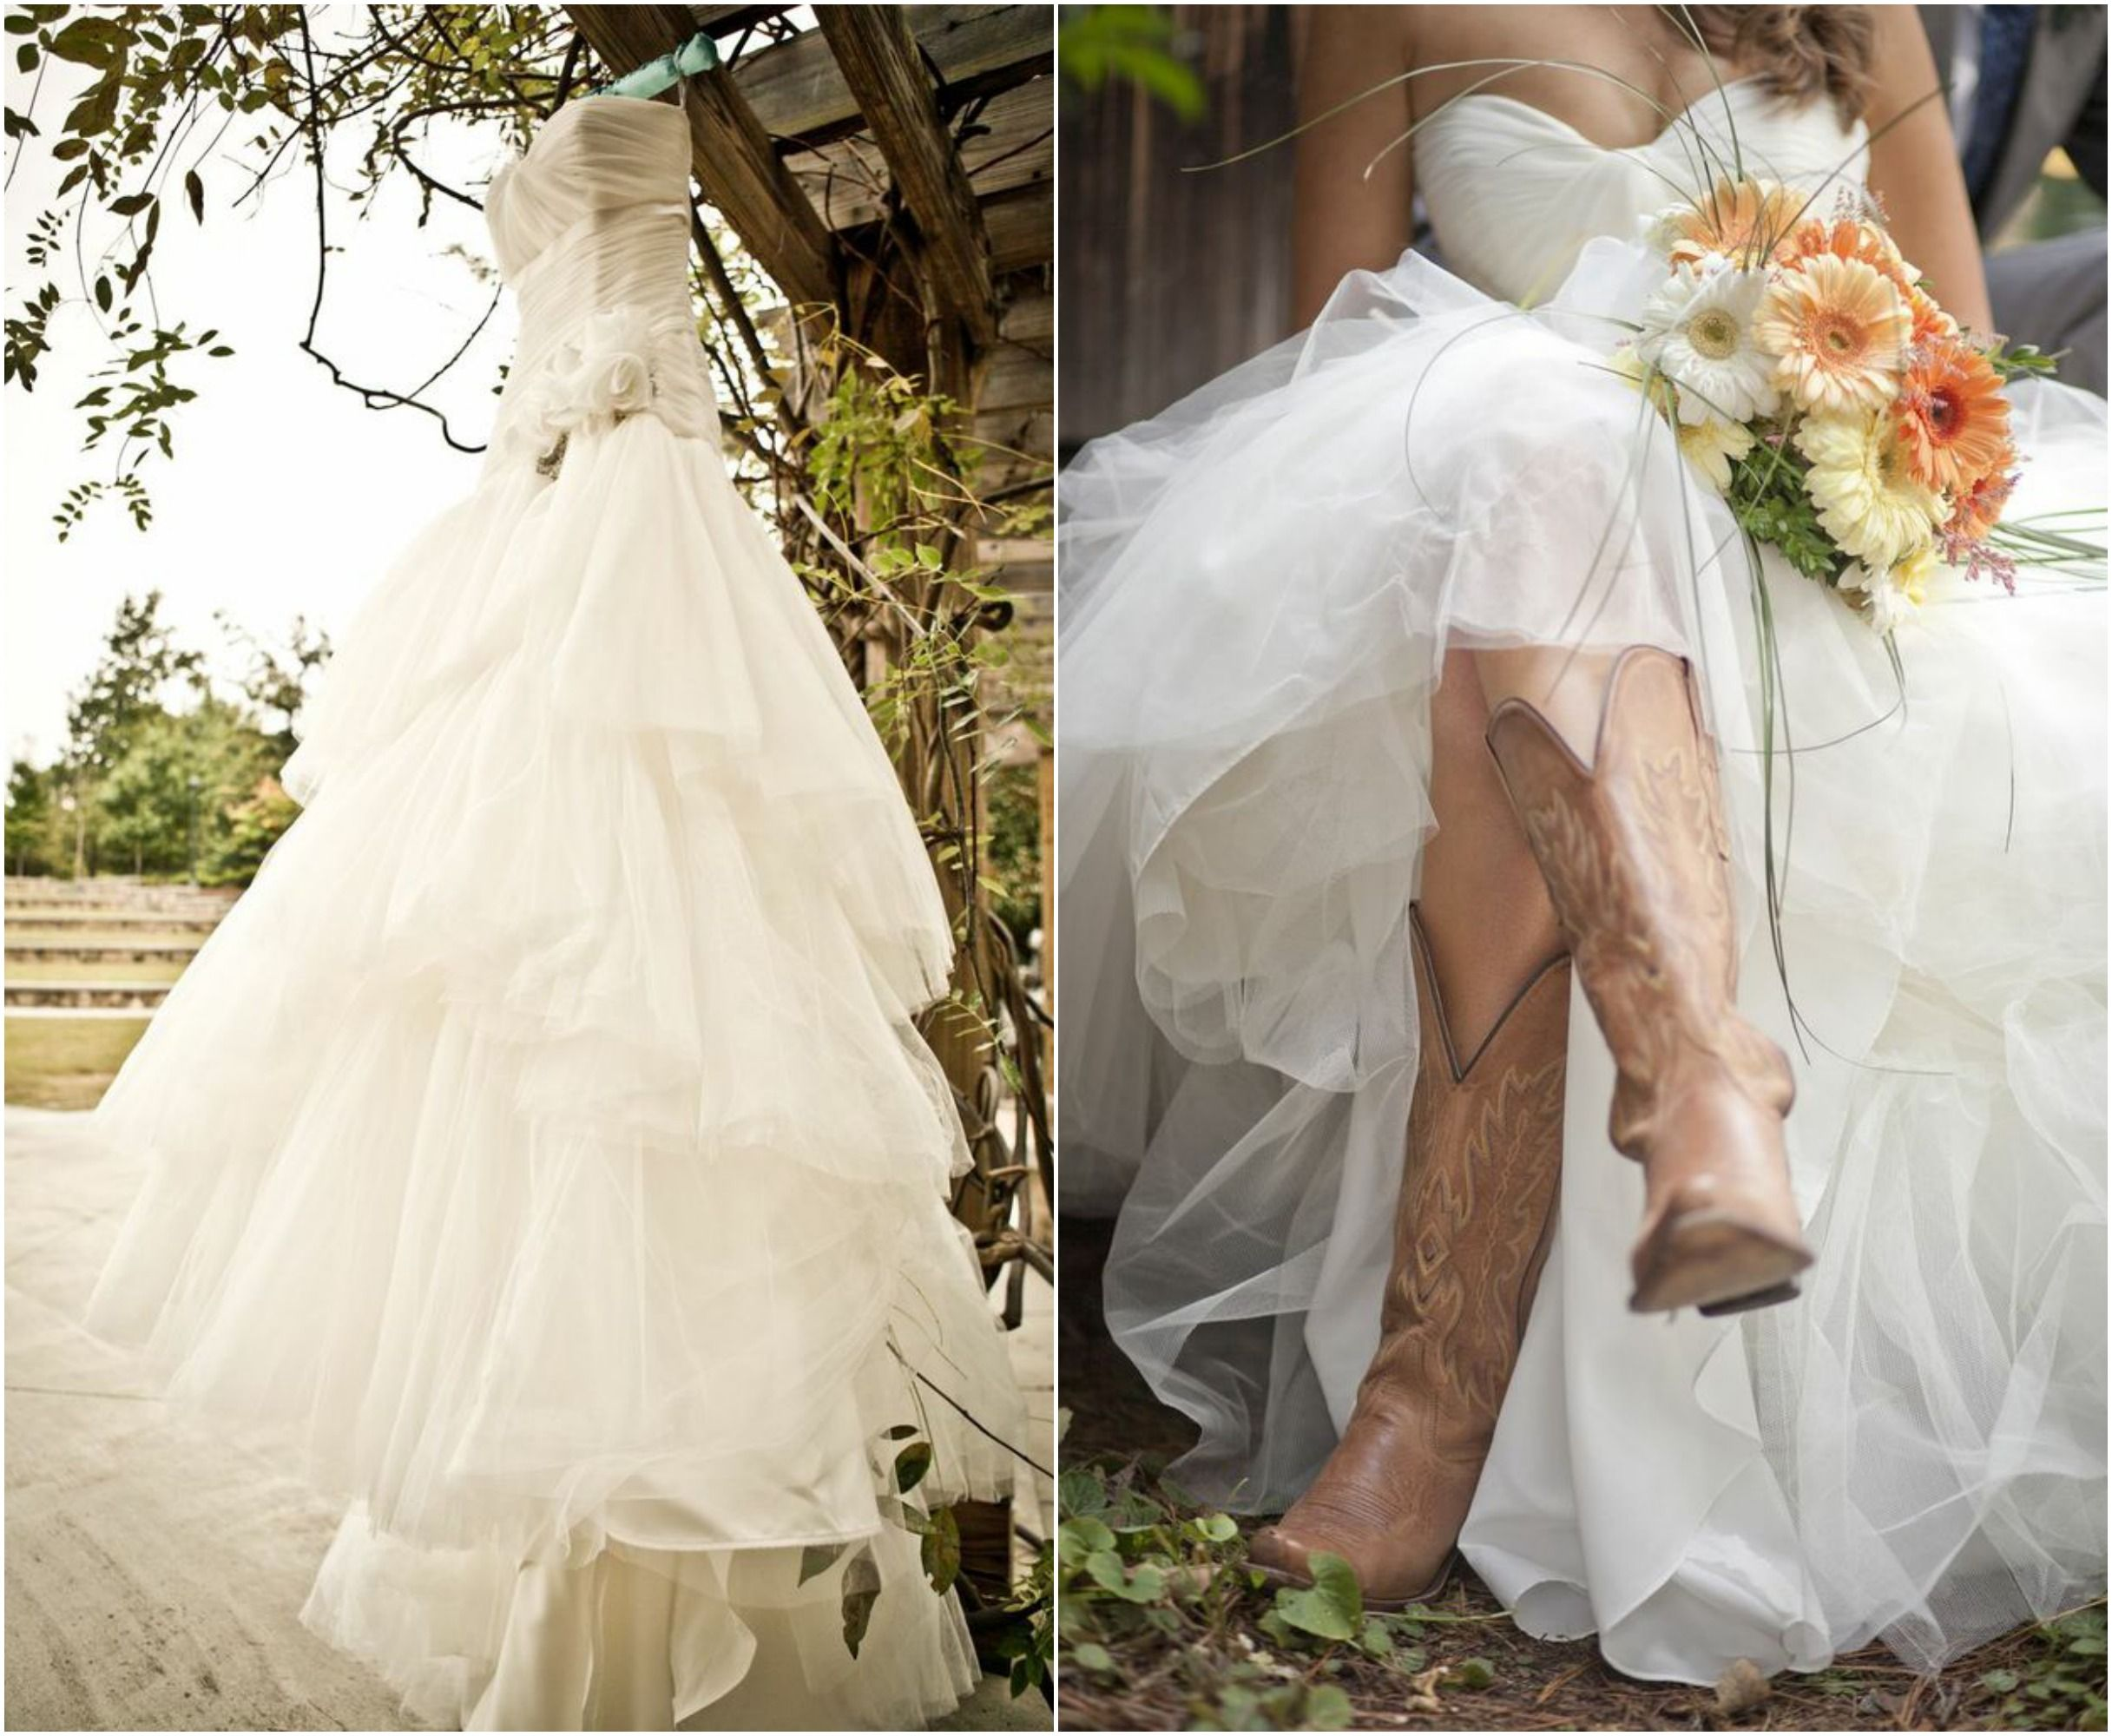 Rustic Wedding With Bridesmaids In Cowboy Boots | Vestidos de novia ...